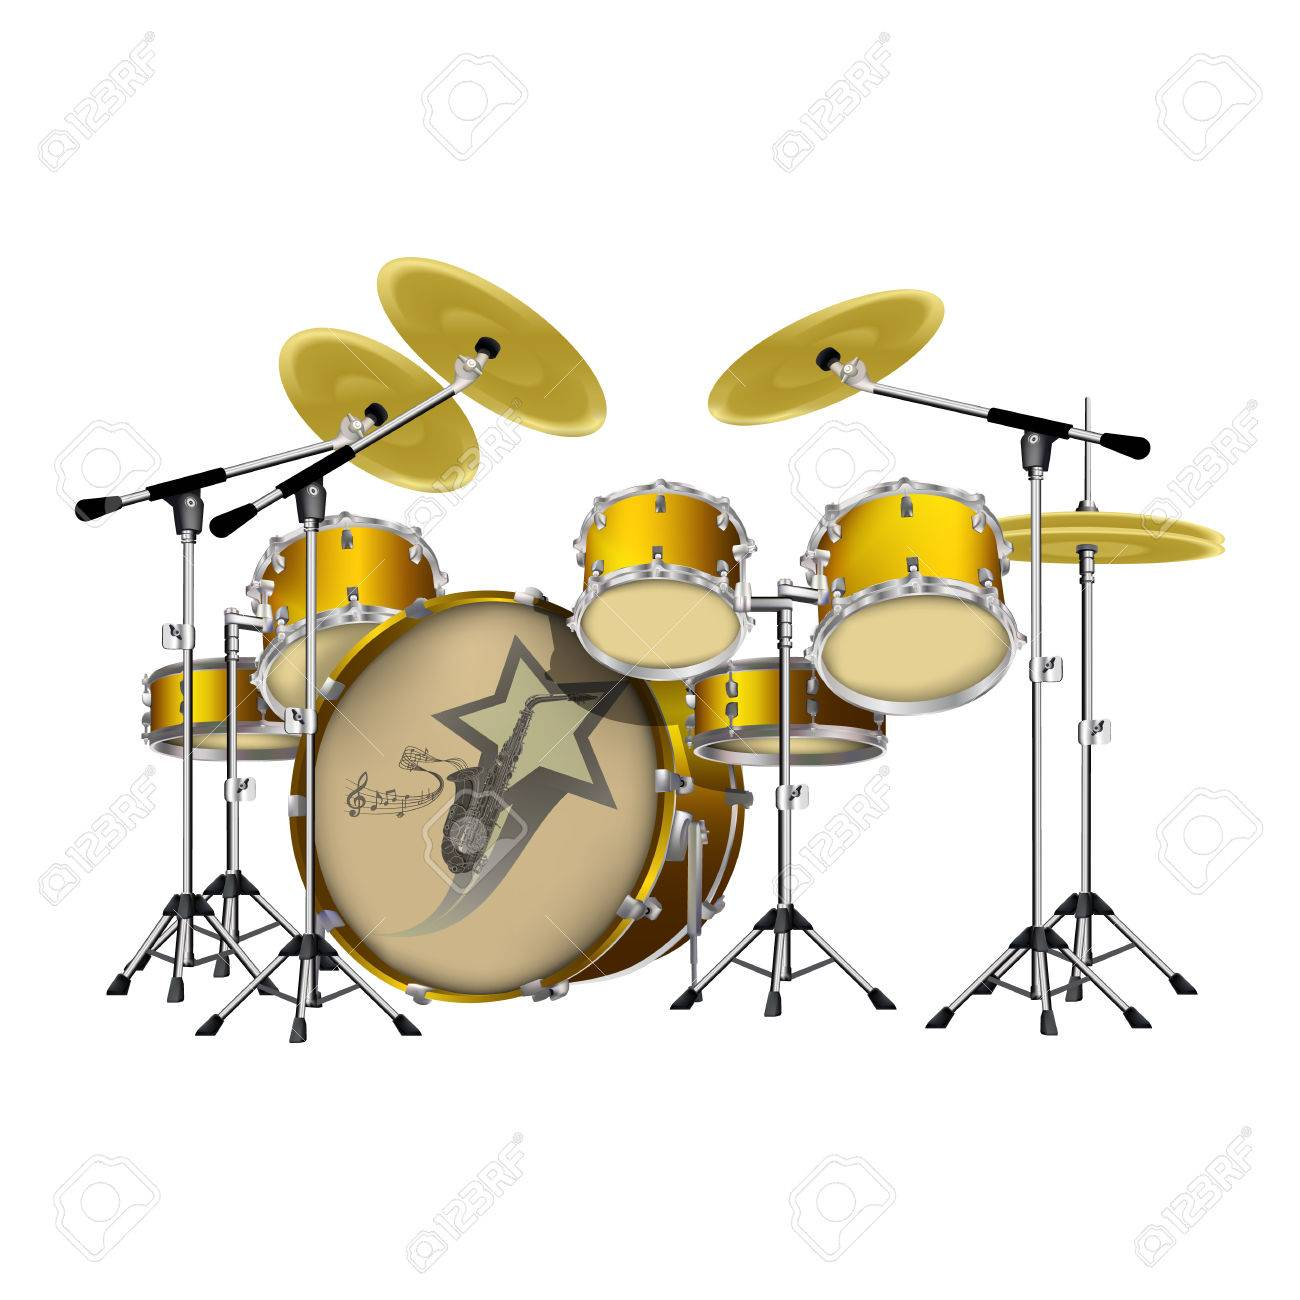 Vector Illustration Of A Drum Set, A Set Of Drums For A Music ...